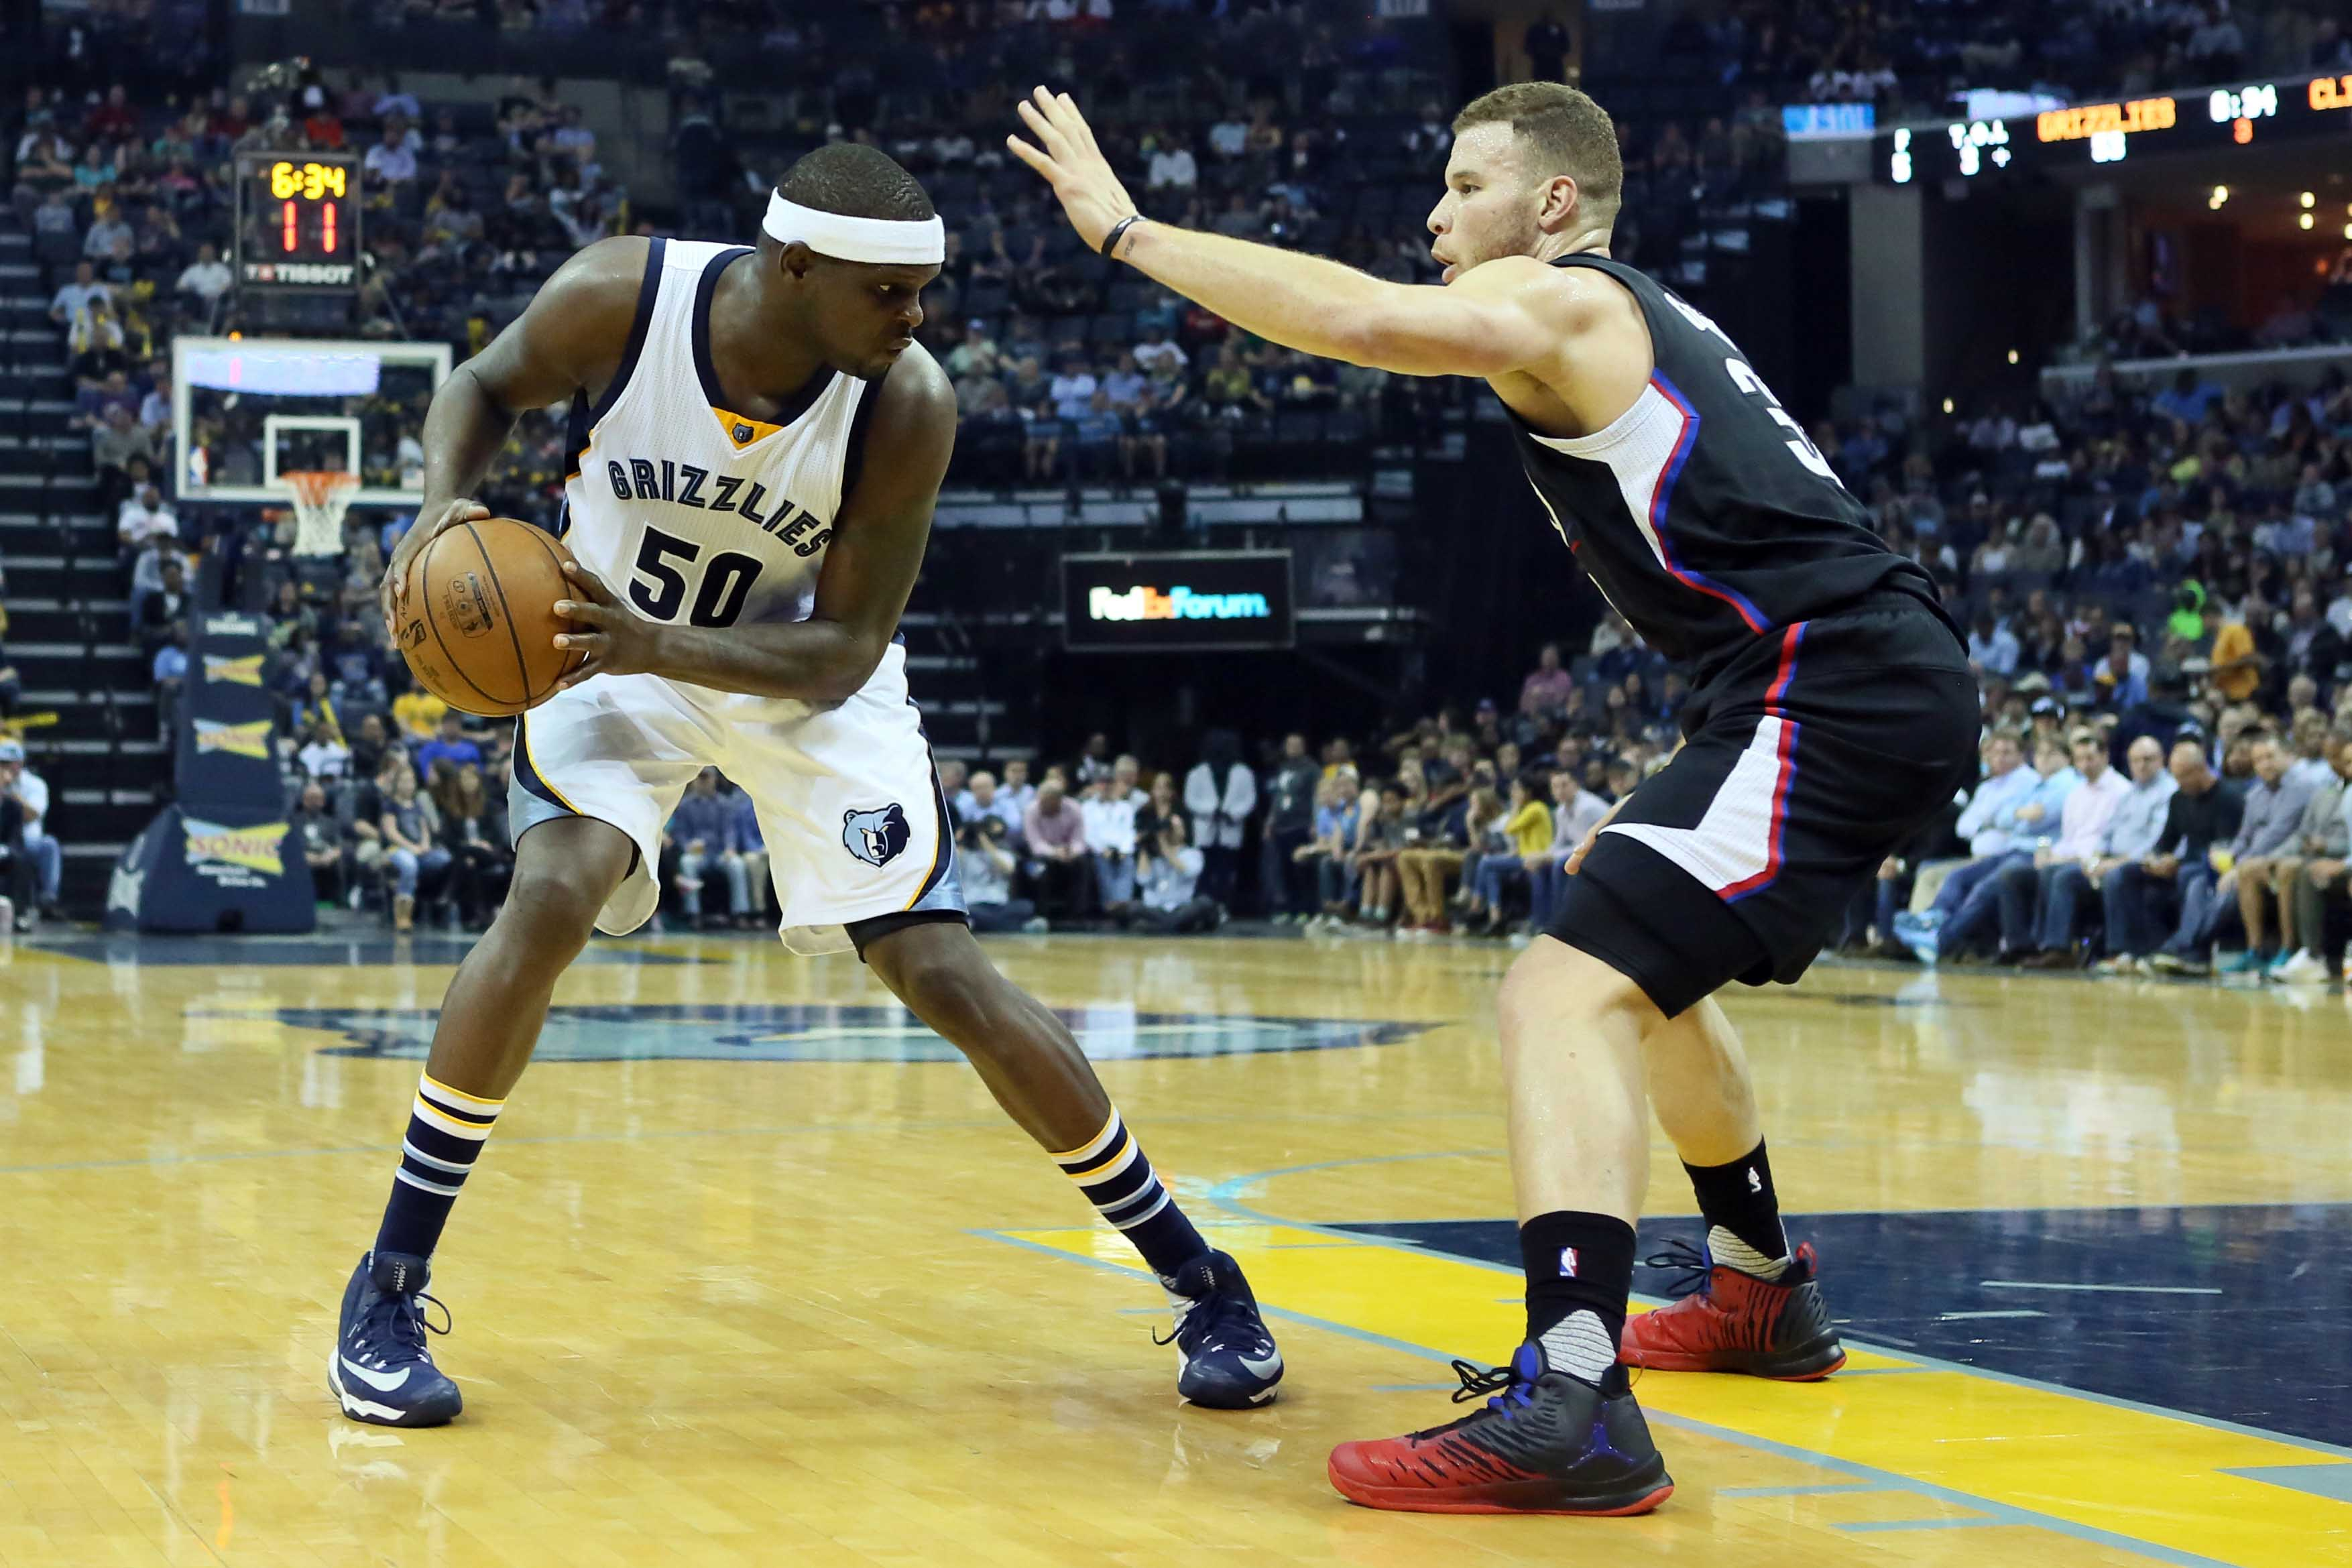 9929037-nba-los-angeles-clippers-at-memphis-grizzlies